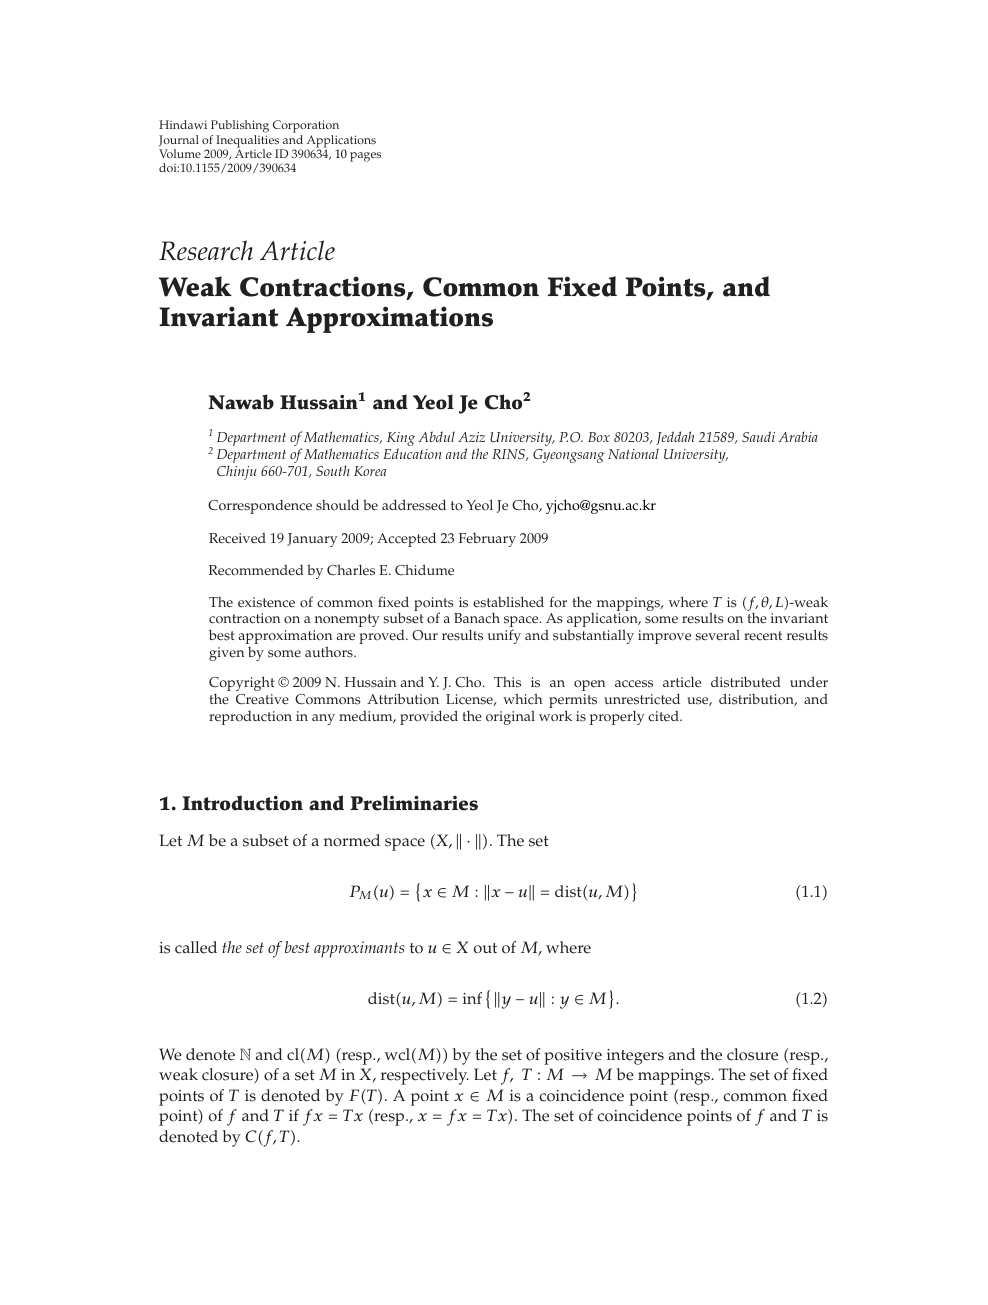 research paper topics in mathematics education